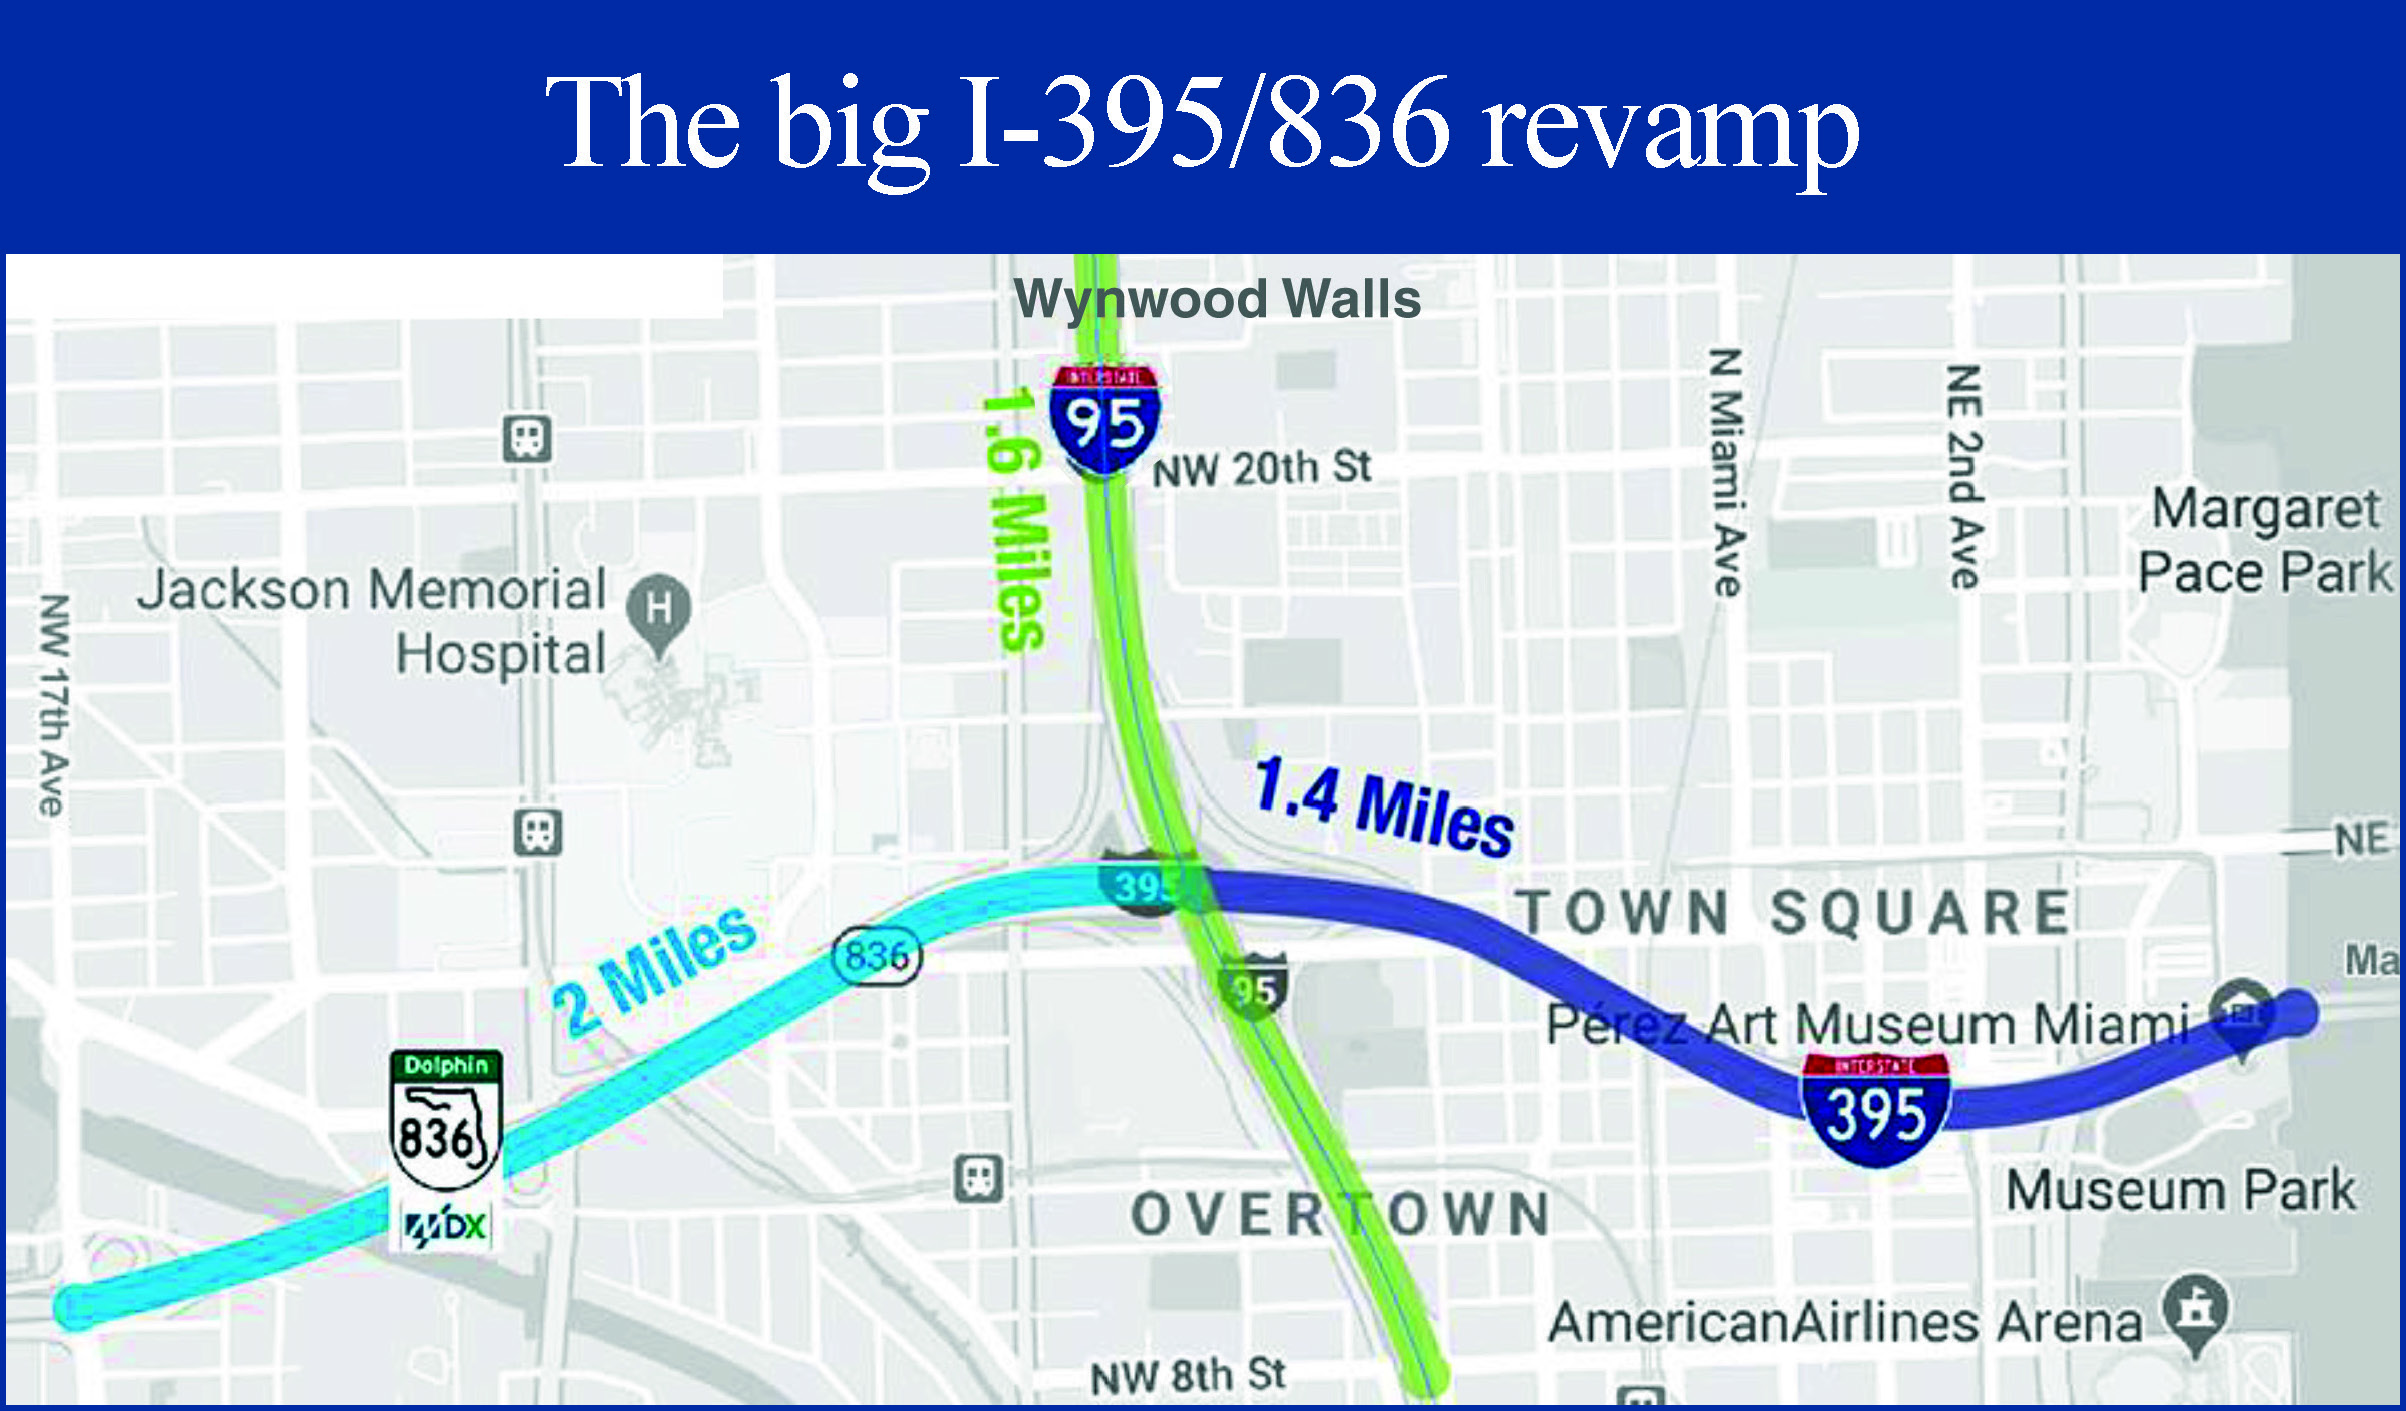 The great unknown: how long will I-395/836 project take?